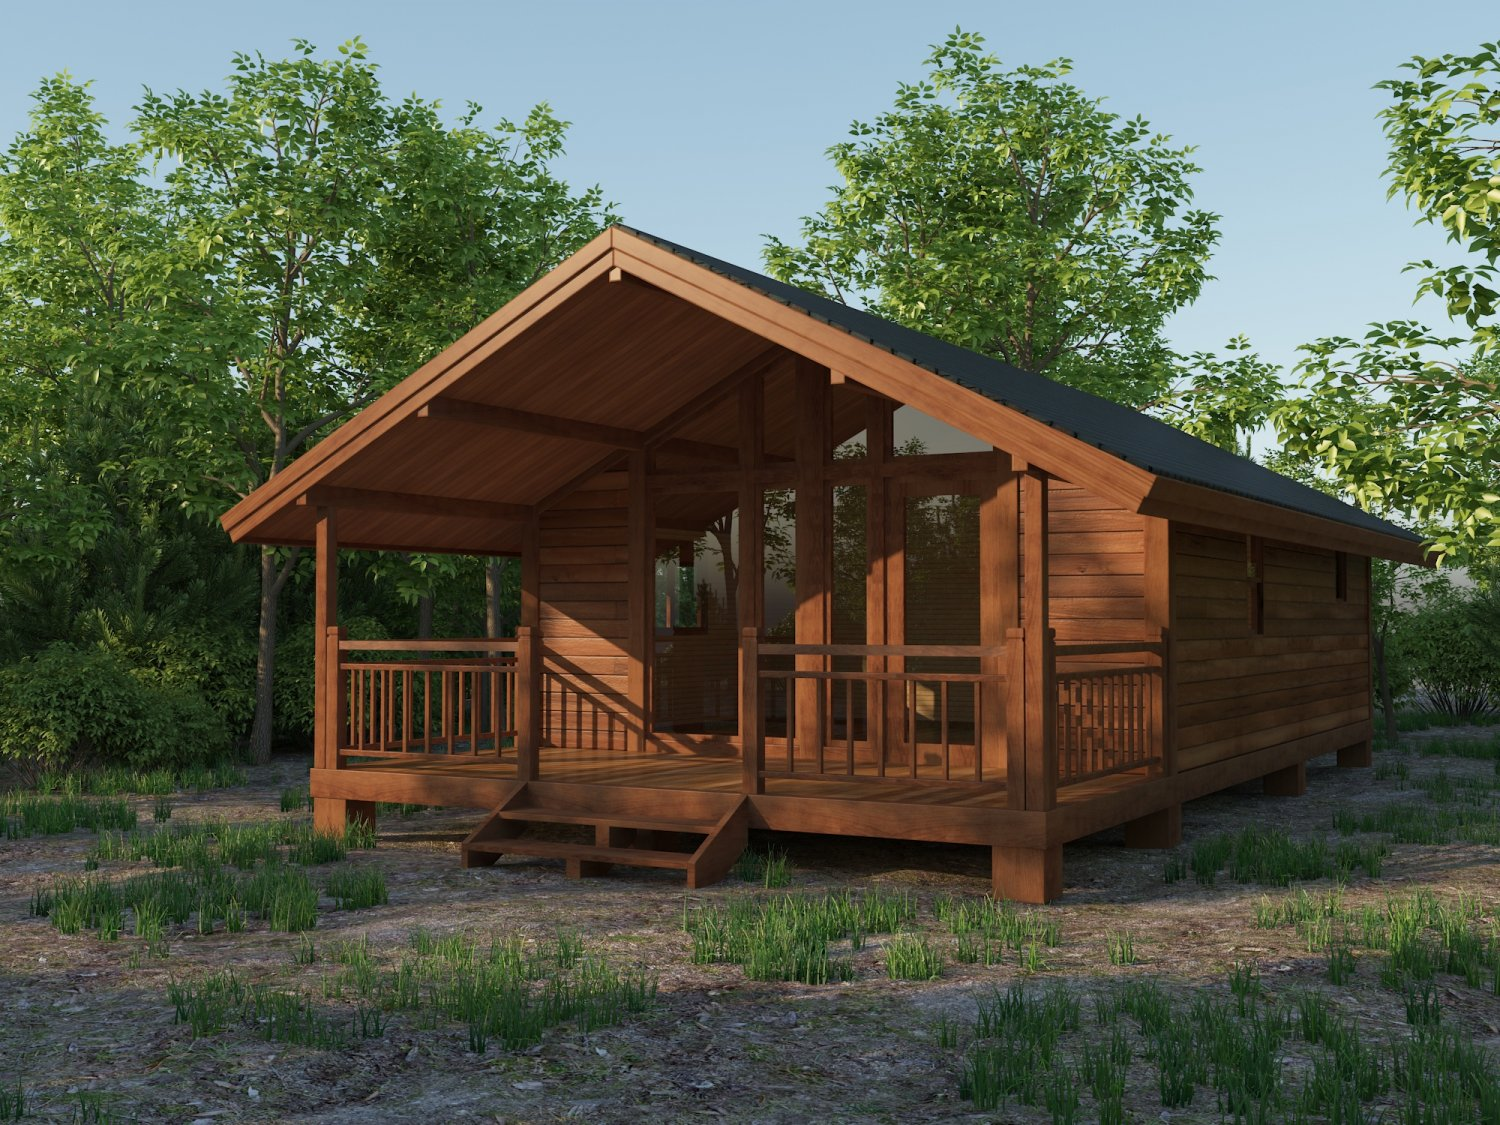 Small Wooden House For Nature Living 3d Model In Buildings 3dexport